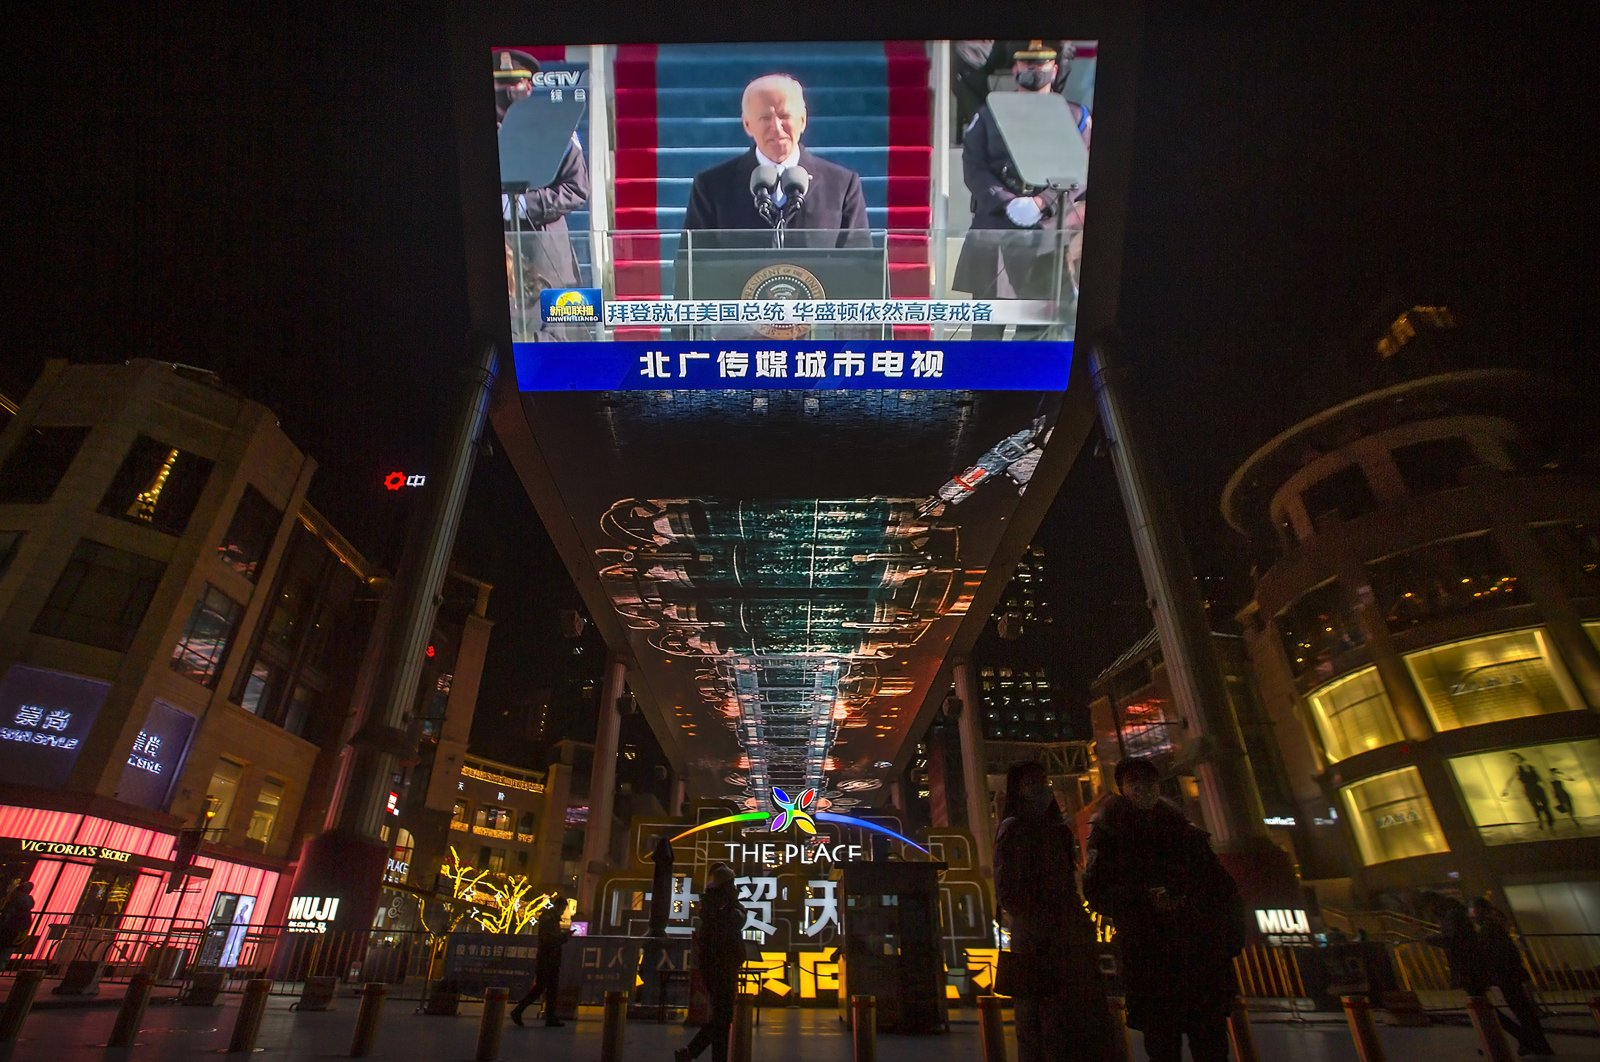 A large screen shows news coverage of the inauguration of U.S. President Joe Biden at a shopping mall in Beijing, China, Jan. 21, 2021. (AP Photo)